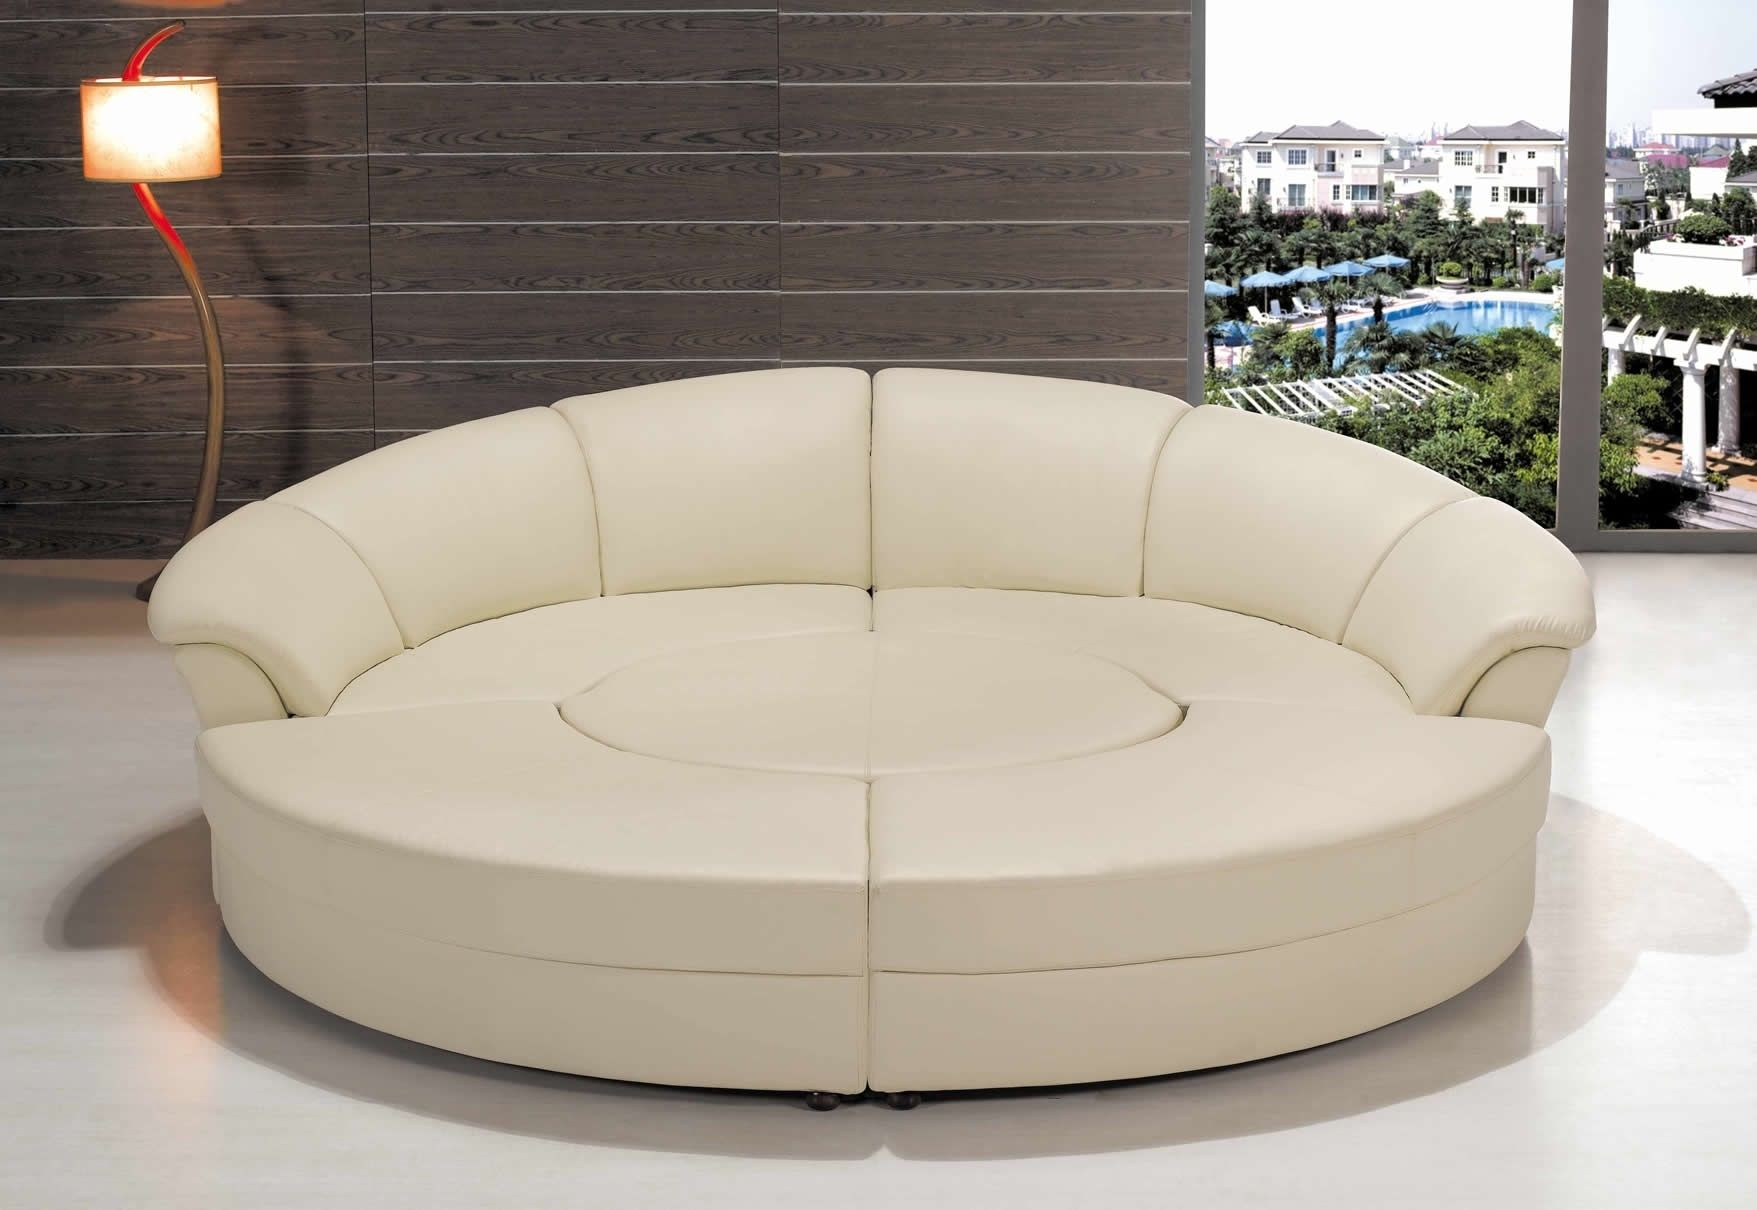 Rounded Sofas Https Tany P 100748 Find Out Amazing Options Regarding Round Arm Back Corner Also Several